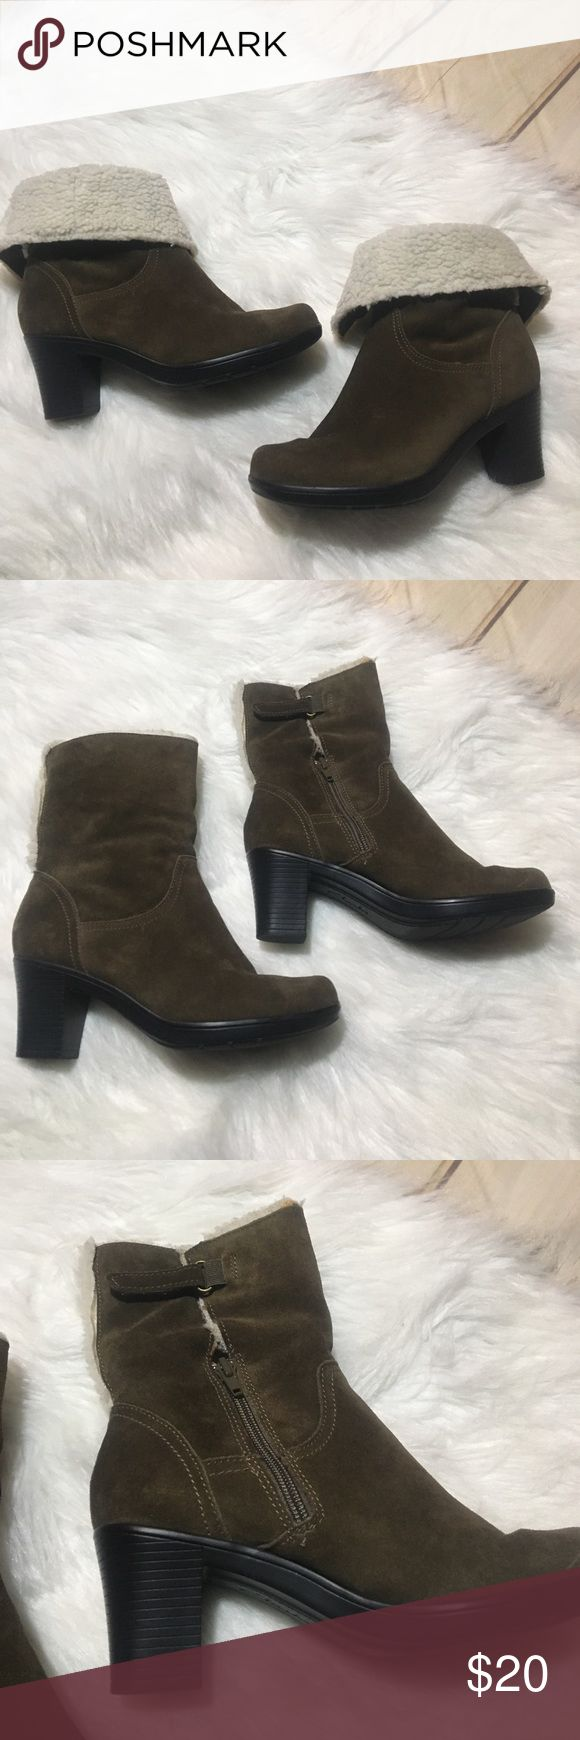 """Clarks Booties Suede Heeled Boots Faux Fur 5 1/2 Clarks Booties Leather Suede Heeled Boots Faux Fur 5 1/2 Women size. Brownish / Olive Green Colored with Cream colored Faux Fur which could be worn up or down as shown. The Fur has wear as shown and the inner stretch suede has wear/tear markings. Soles are in great condition. Zips on sides. Boots measures approx 7"""" if worn zipped up and 4 1/2"""" if worn folded. Heel measures approx 2"""". Clarks Shoes Ankle Boots & Booties"""